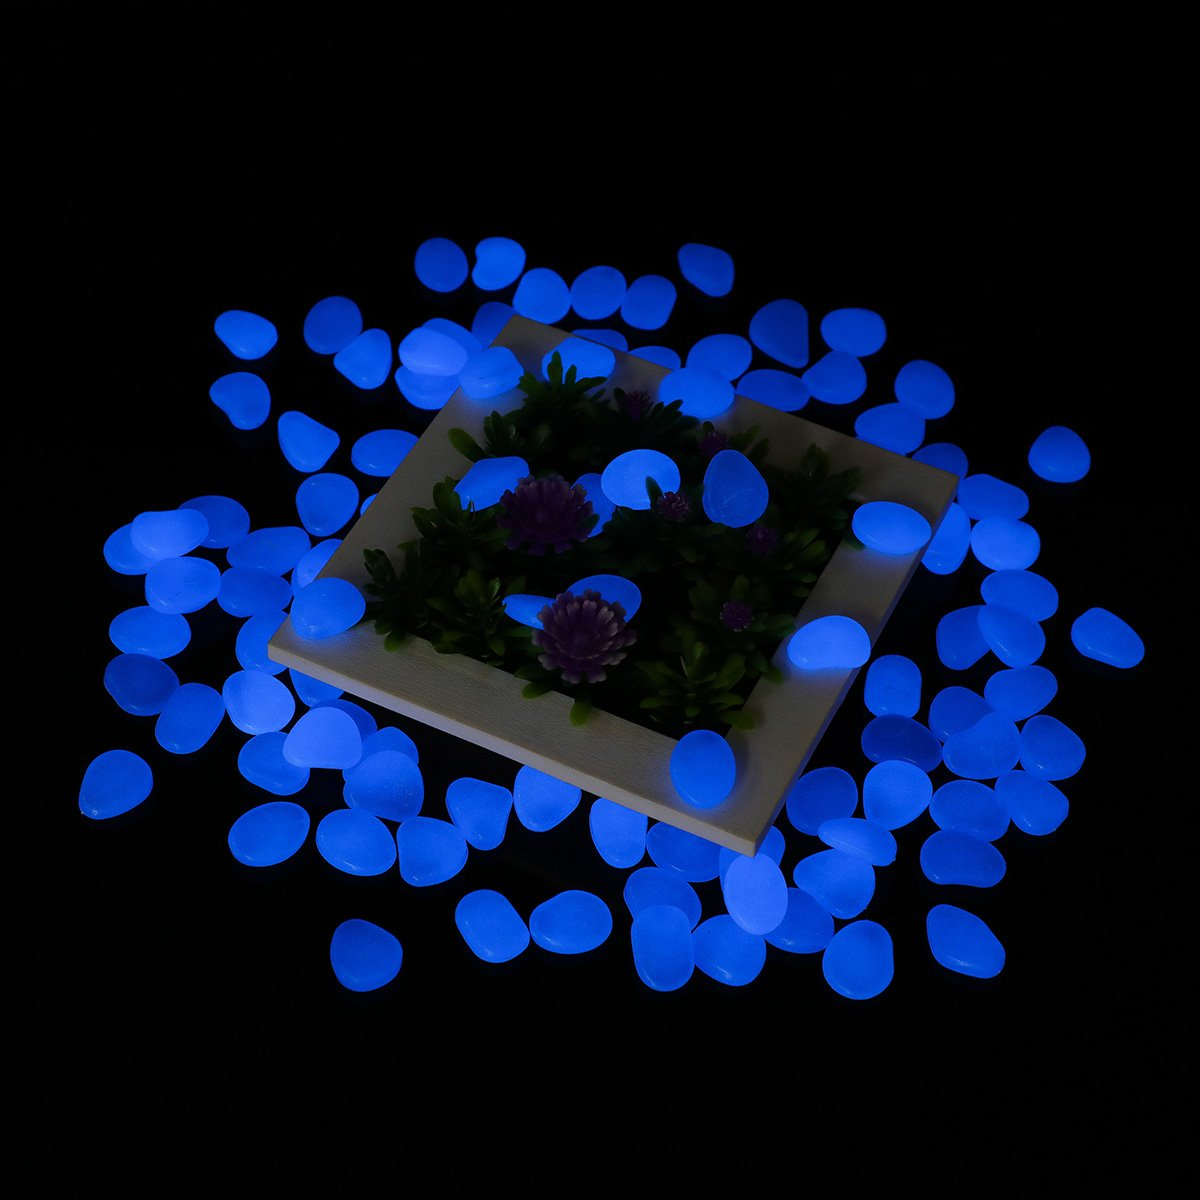 300Pcs Glow in the Dark Pebbles Tvird Glow Stones Glow Pebbles for Garden Walkway, Flowerpot, Fish Tank (Blue)